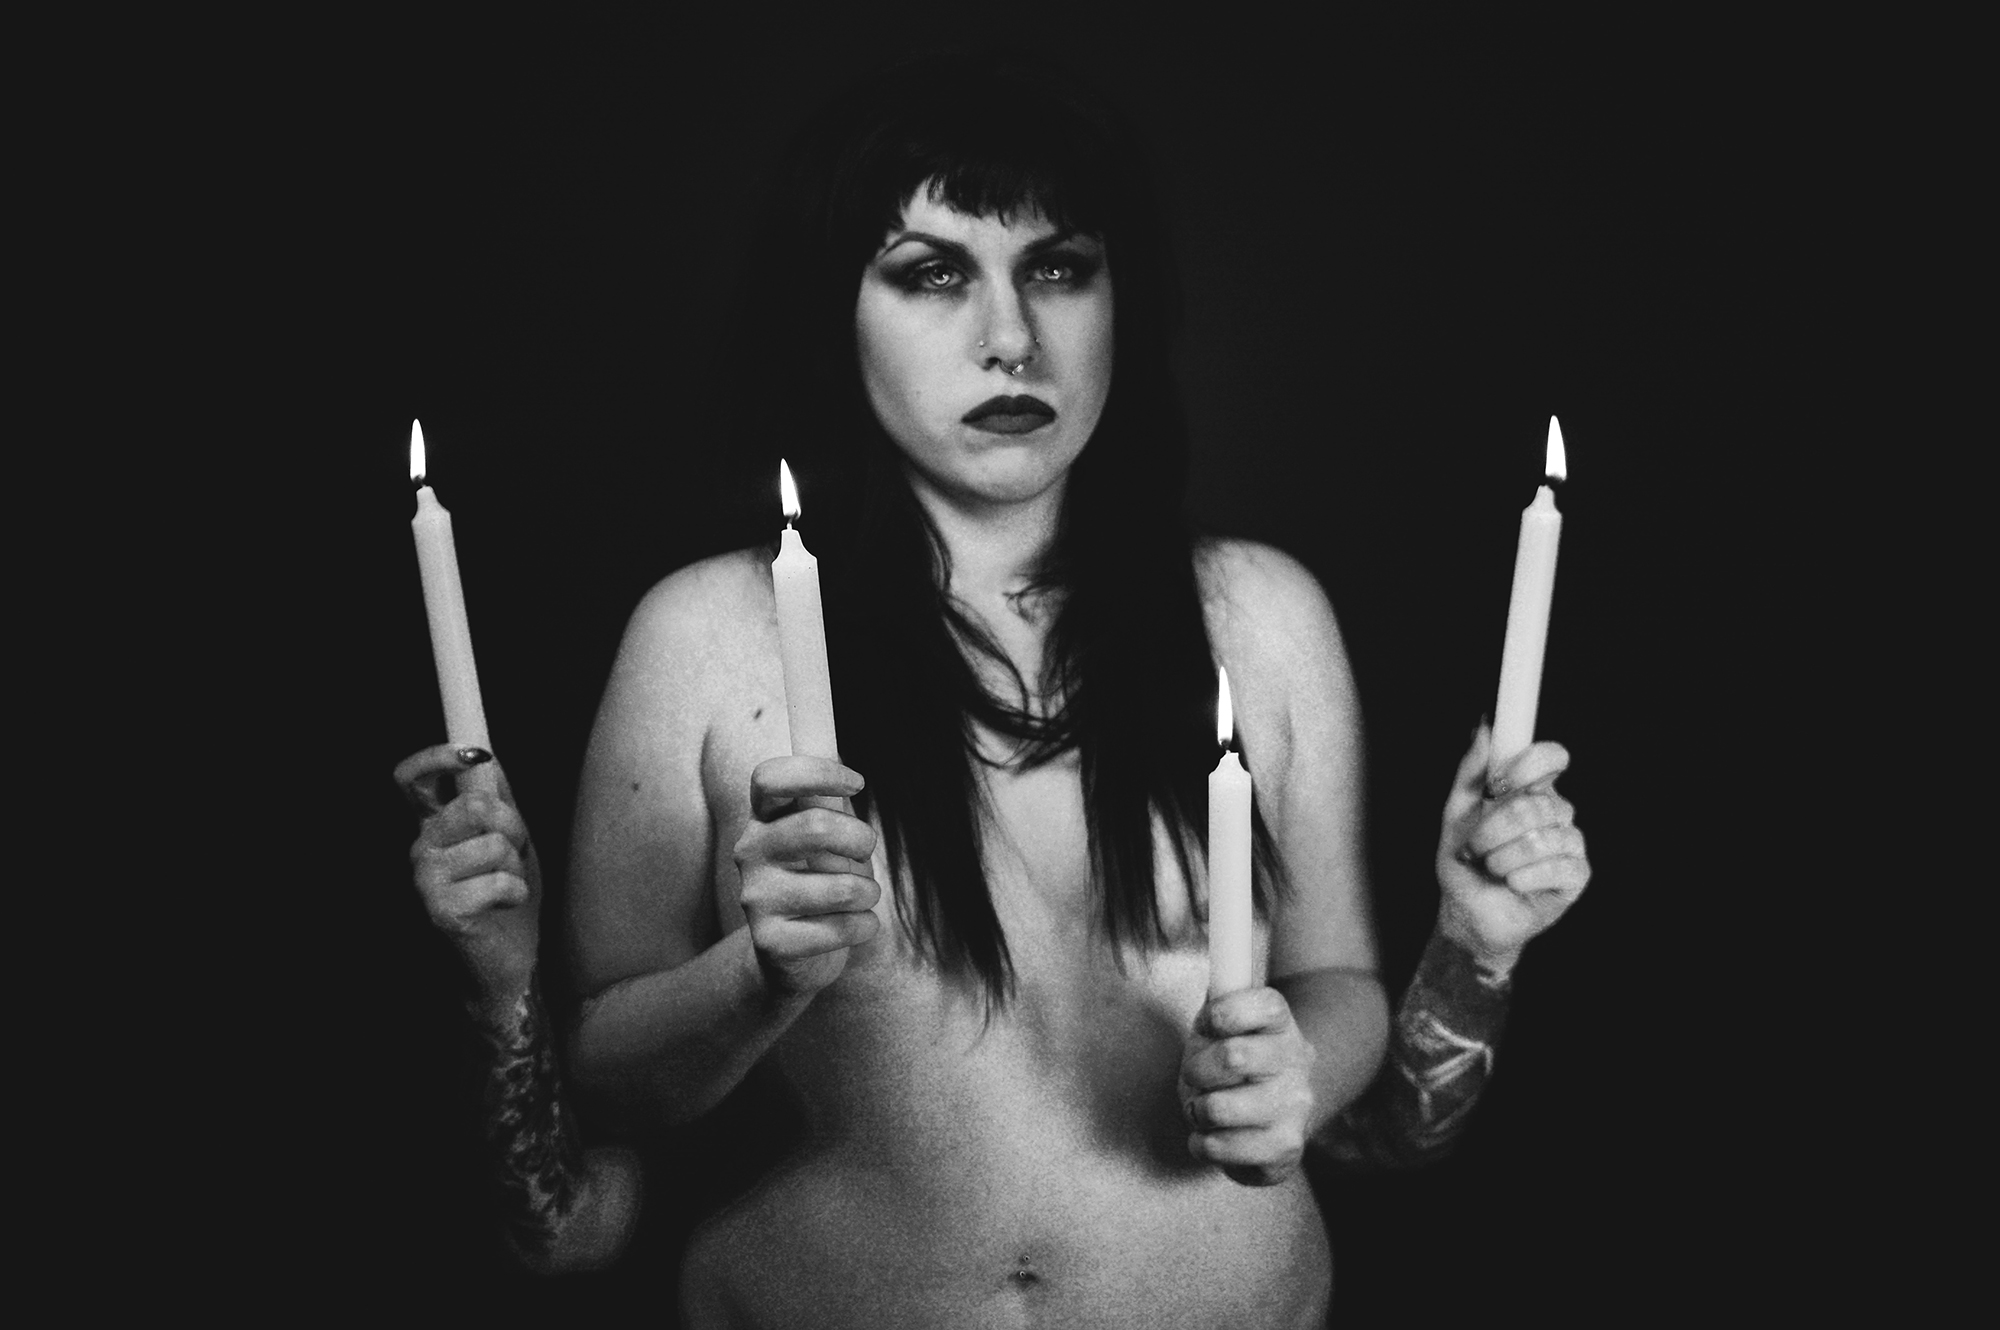 Empowering Witchcraft Photography by Helena Darling